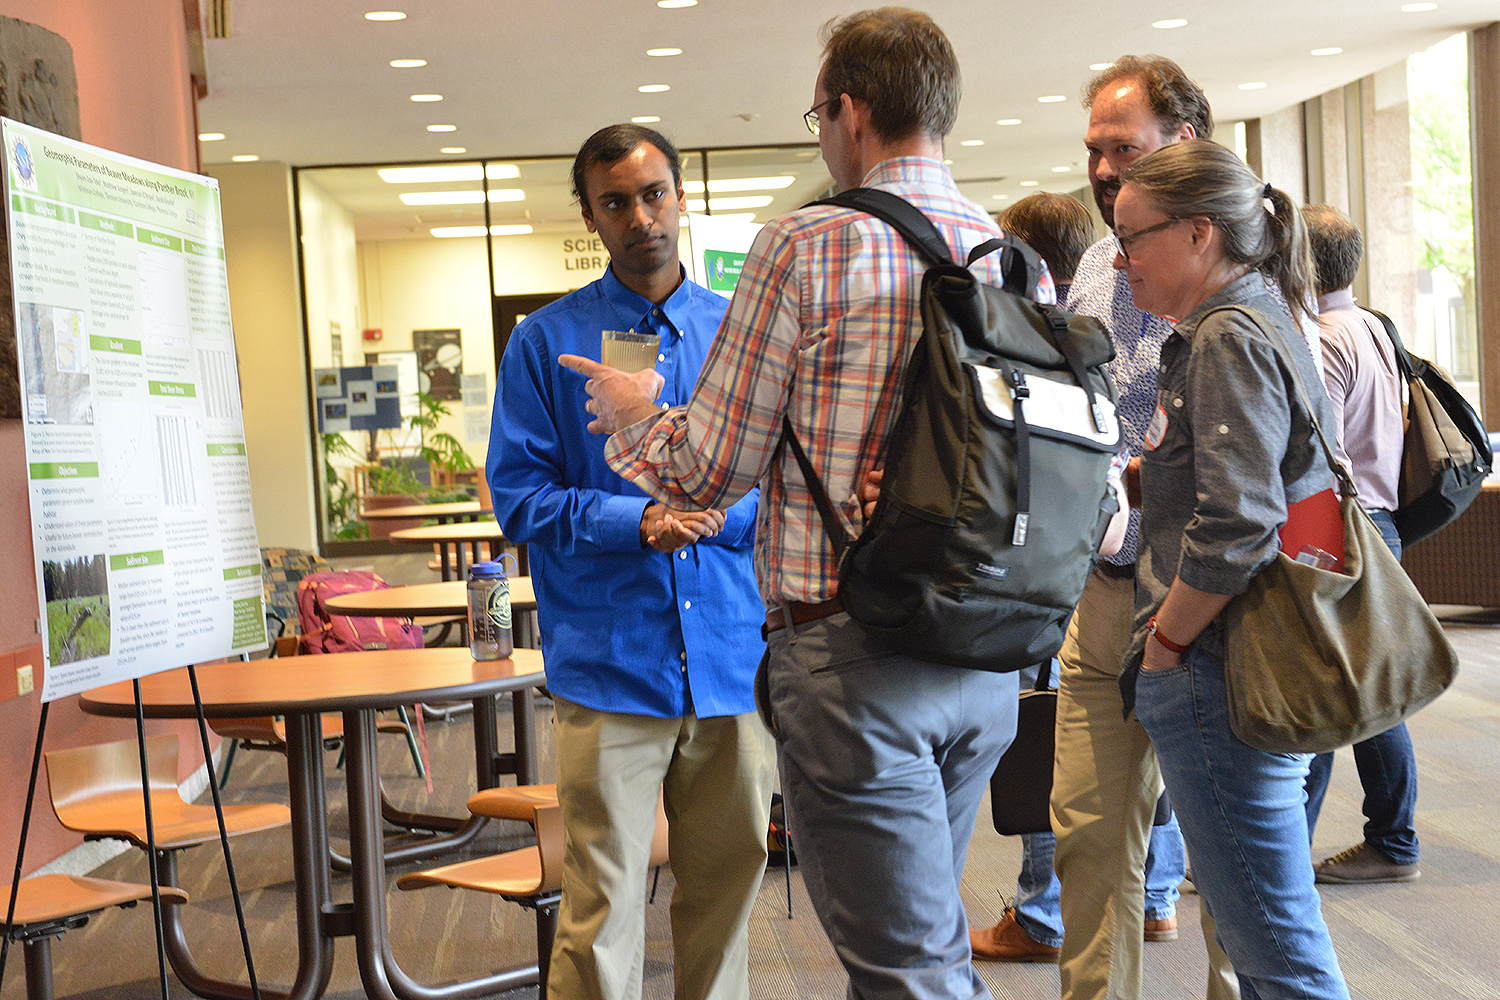 During the 30th Keck Geology Consortium Symposium on April 29, Wesleyan hosted a poster session at Exley Science Center. Several students from the Department of Earth and Environmental Sciences shared their research, as did students visiting from other universities who are part of the Keck Geology Consortium.